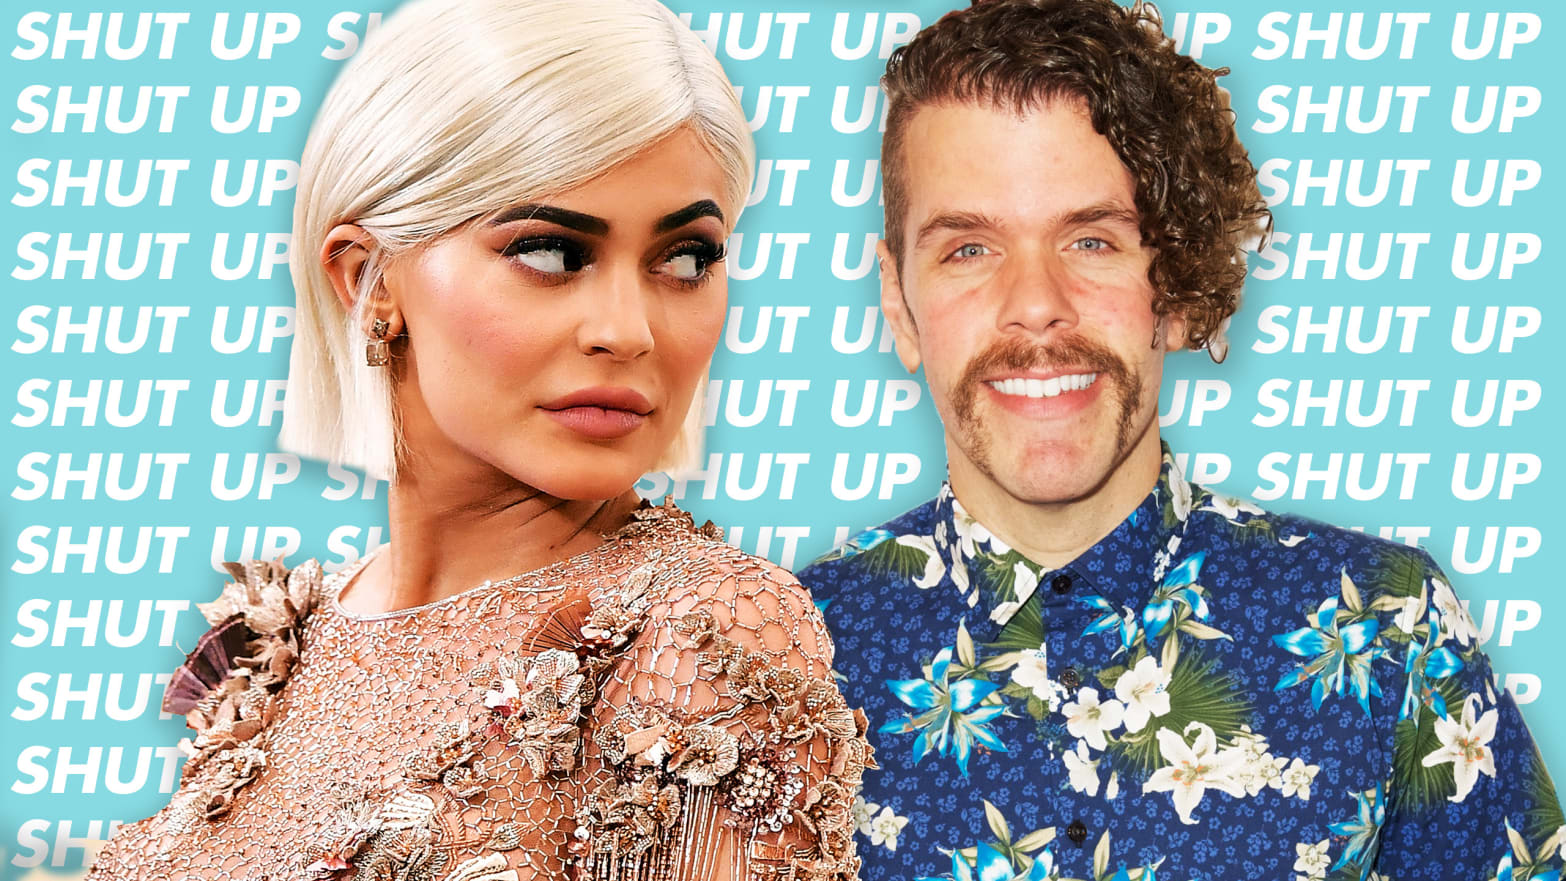 Perez Hilton, and All Men, Should Shut Up About Abortion